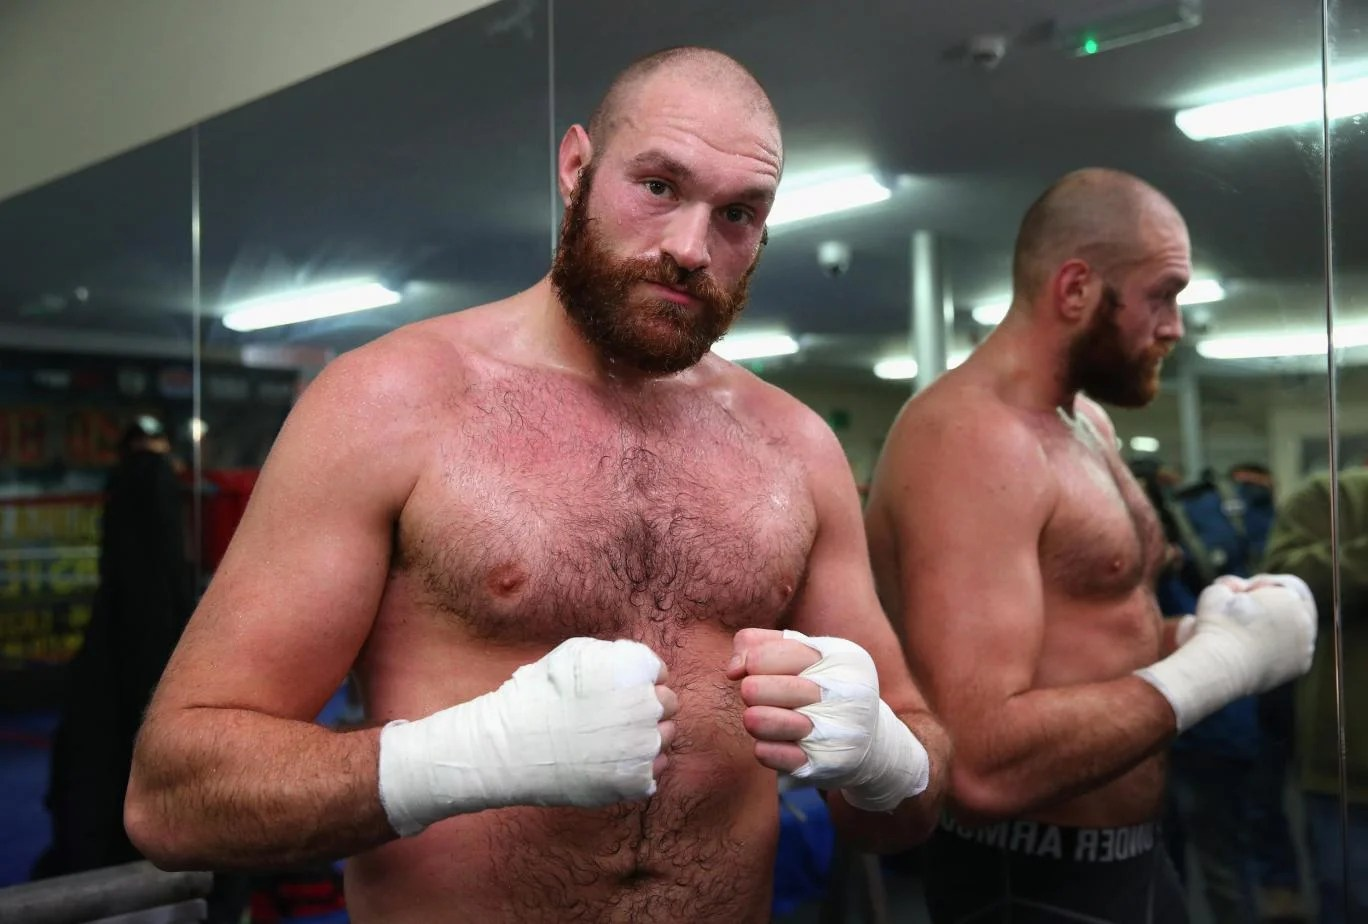 British boxing body to decide on lifting Fury's suspension